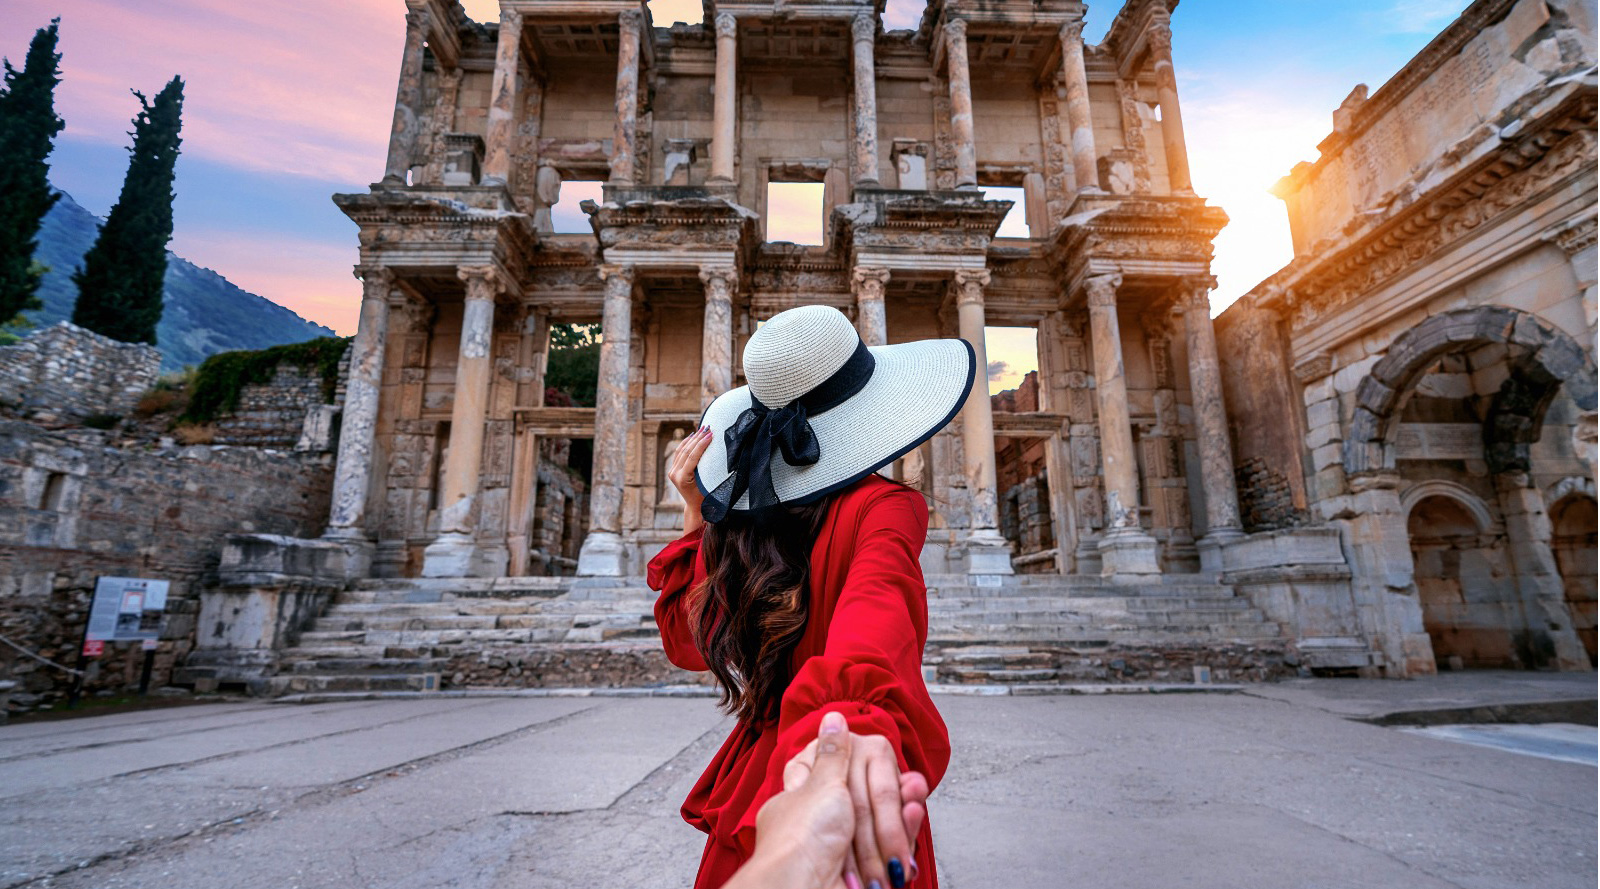 Ephesus – The Turkey's Most Important Ancient City